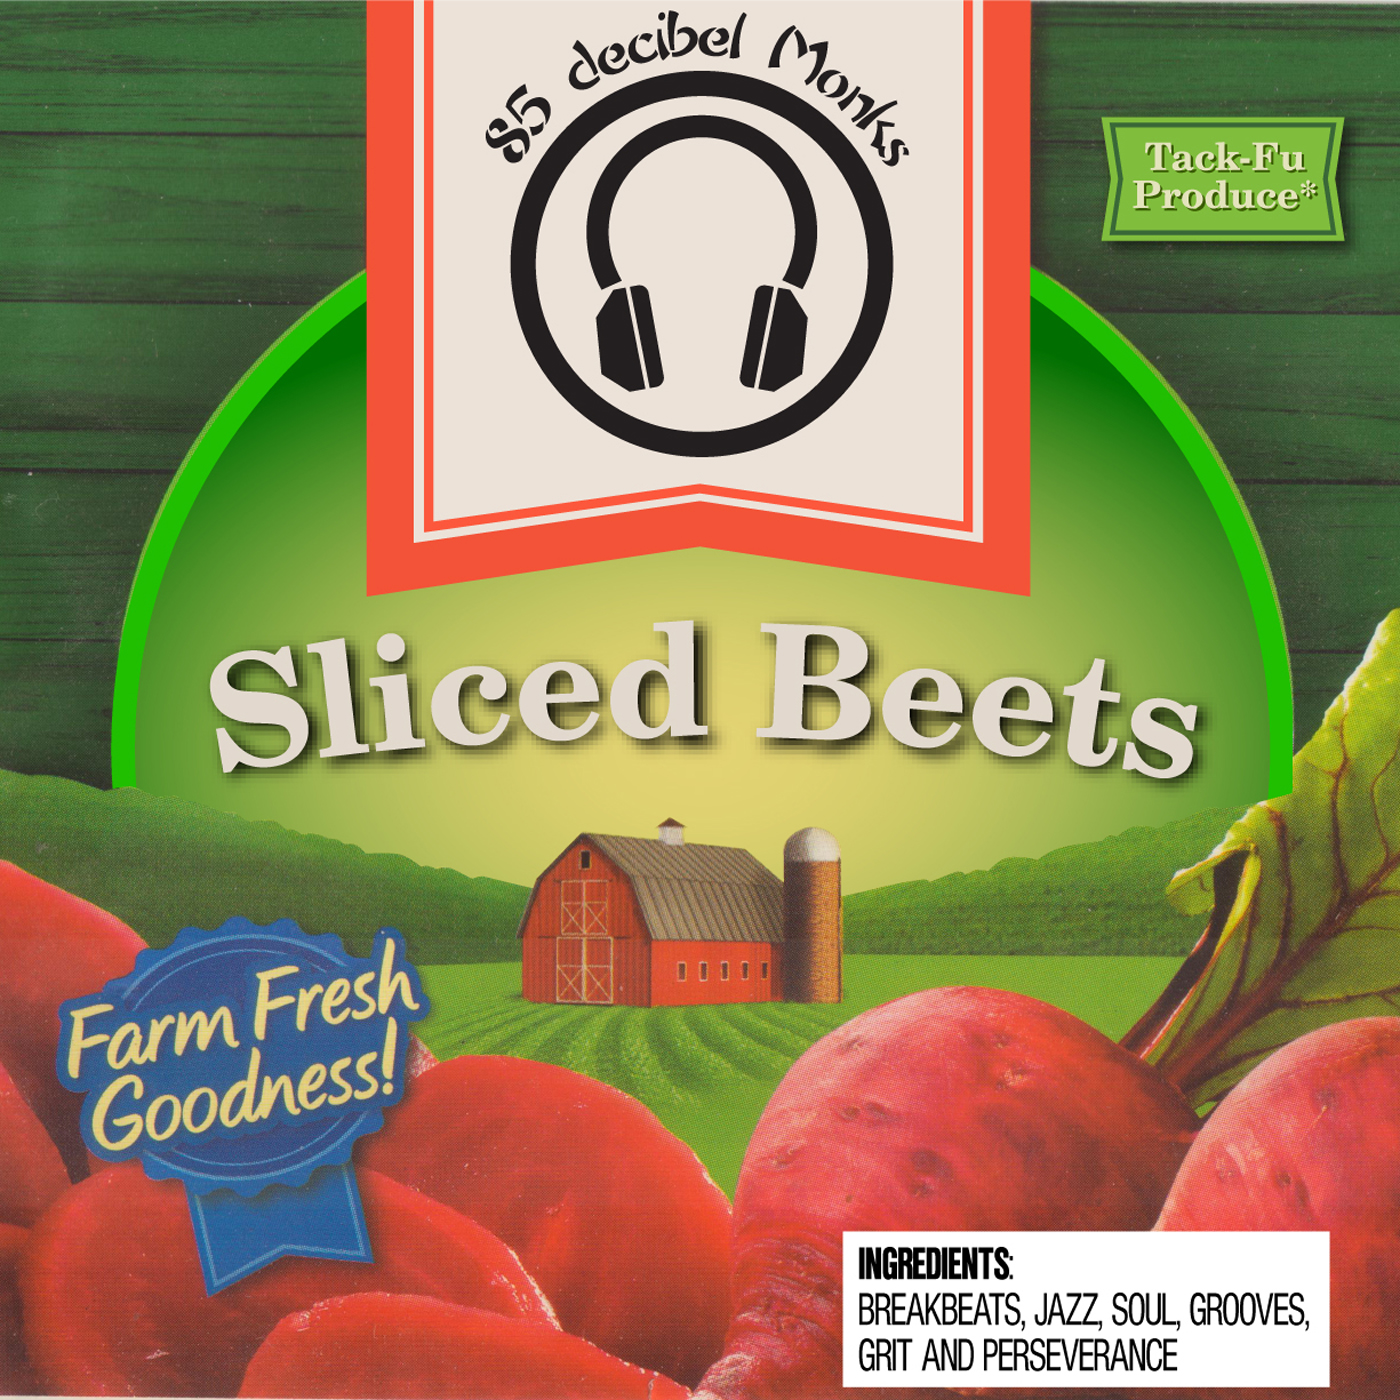 85 decibel Monks – Sliced Beets